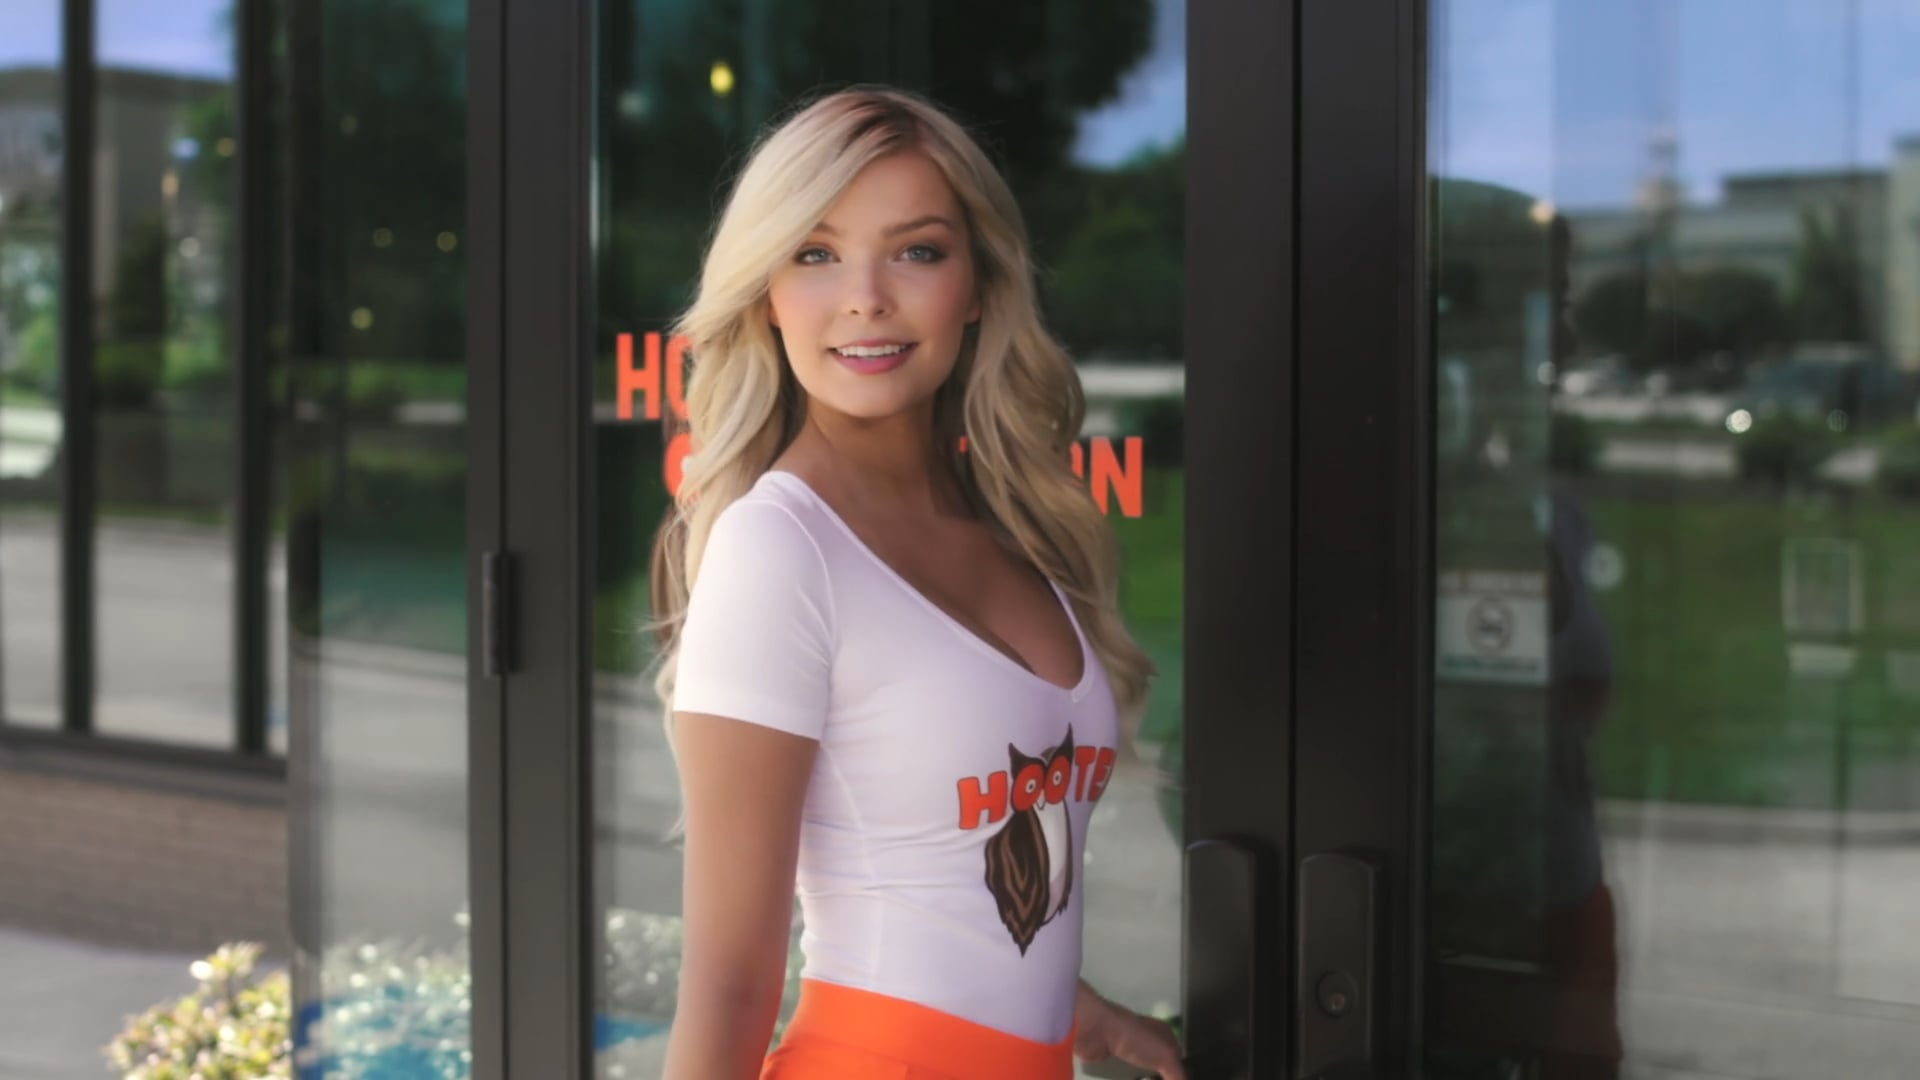 Hooters Baby Come Back Promo Clip